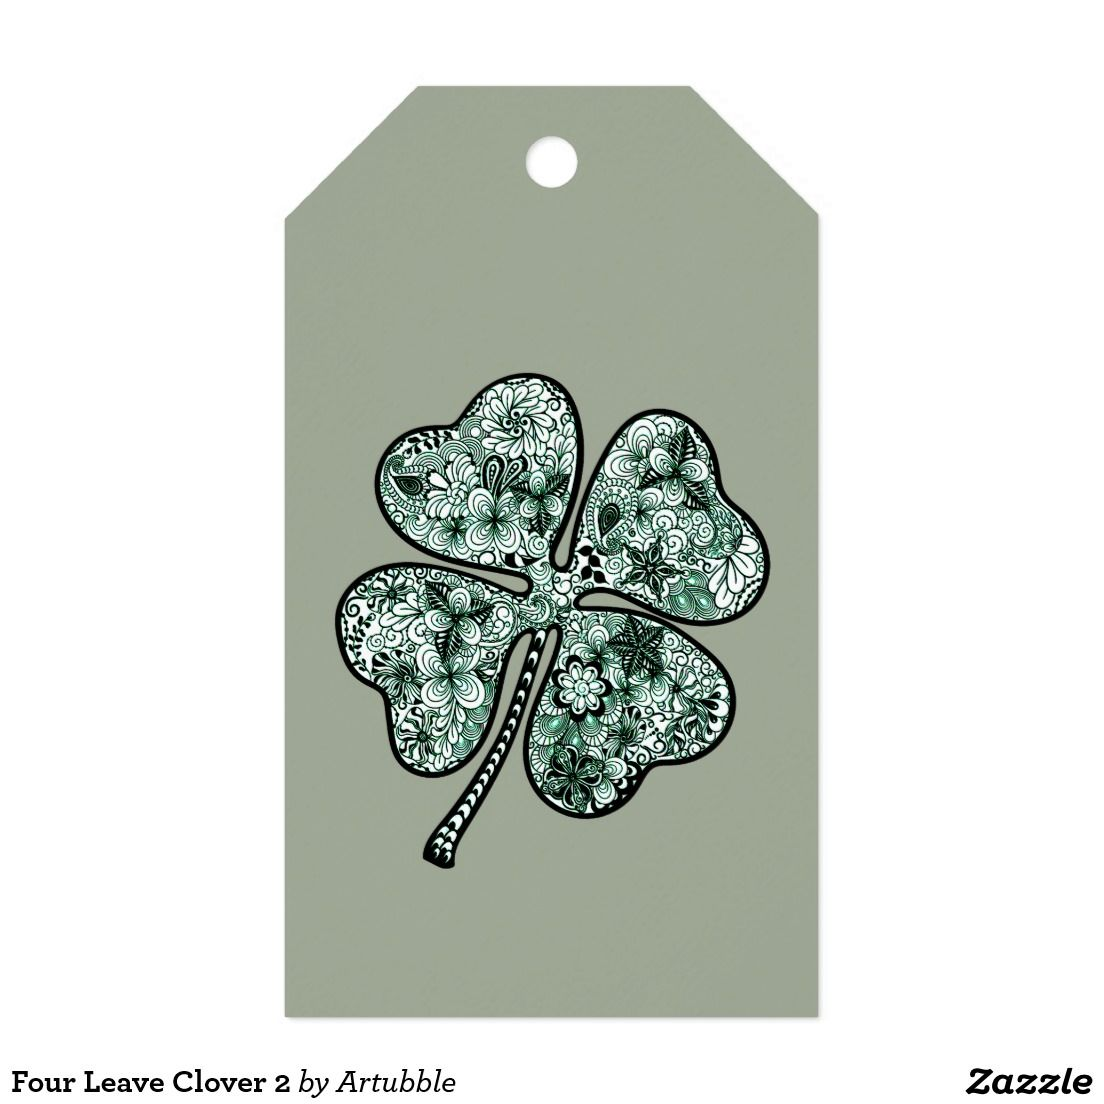 Four Leave Clover 2